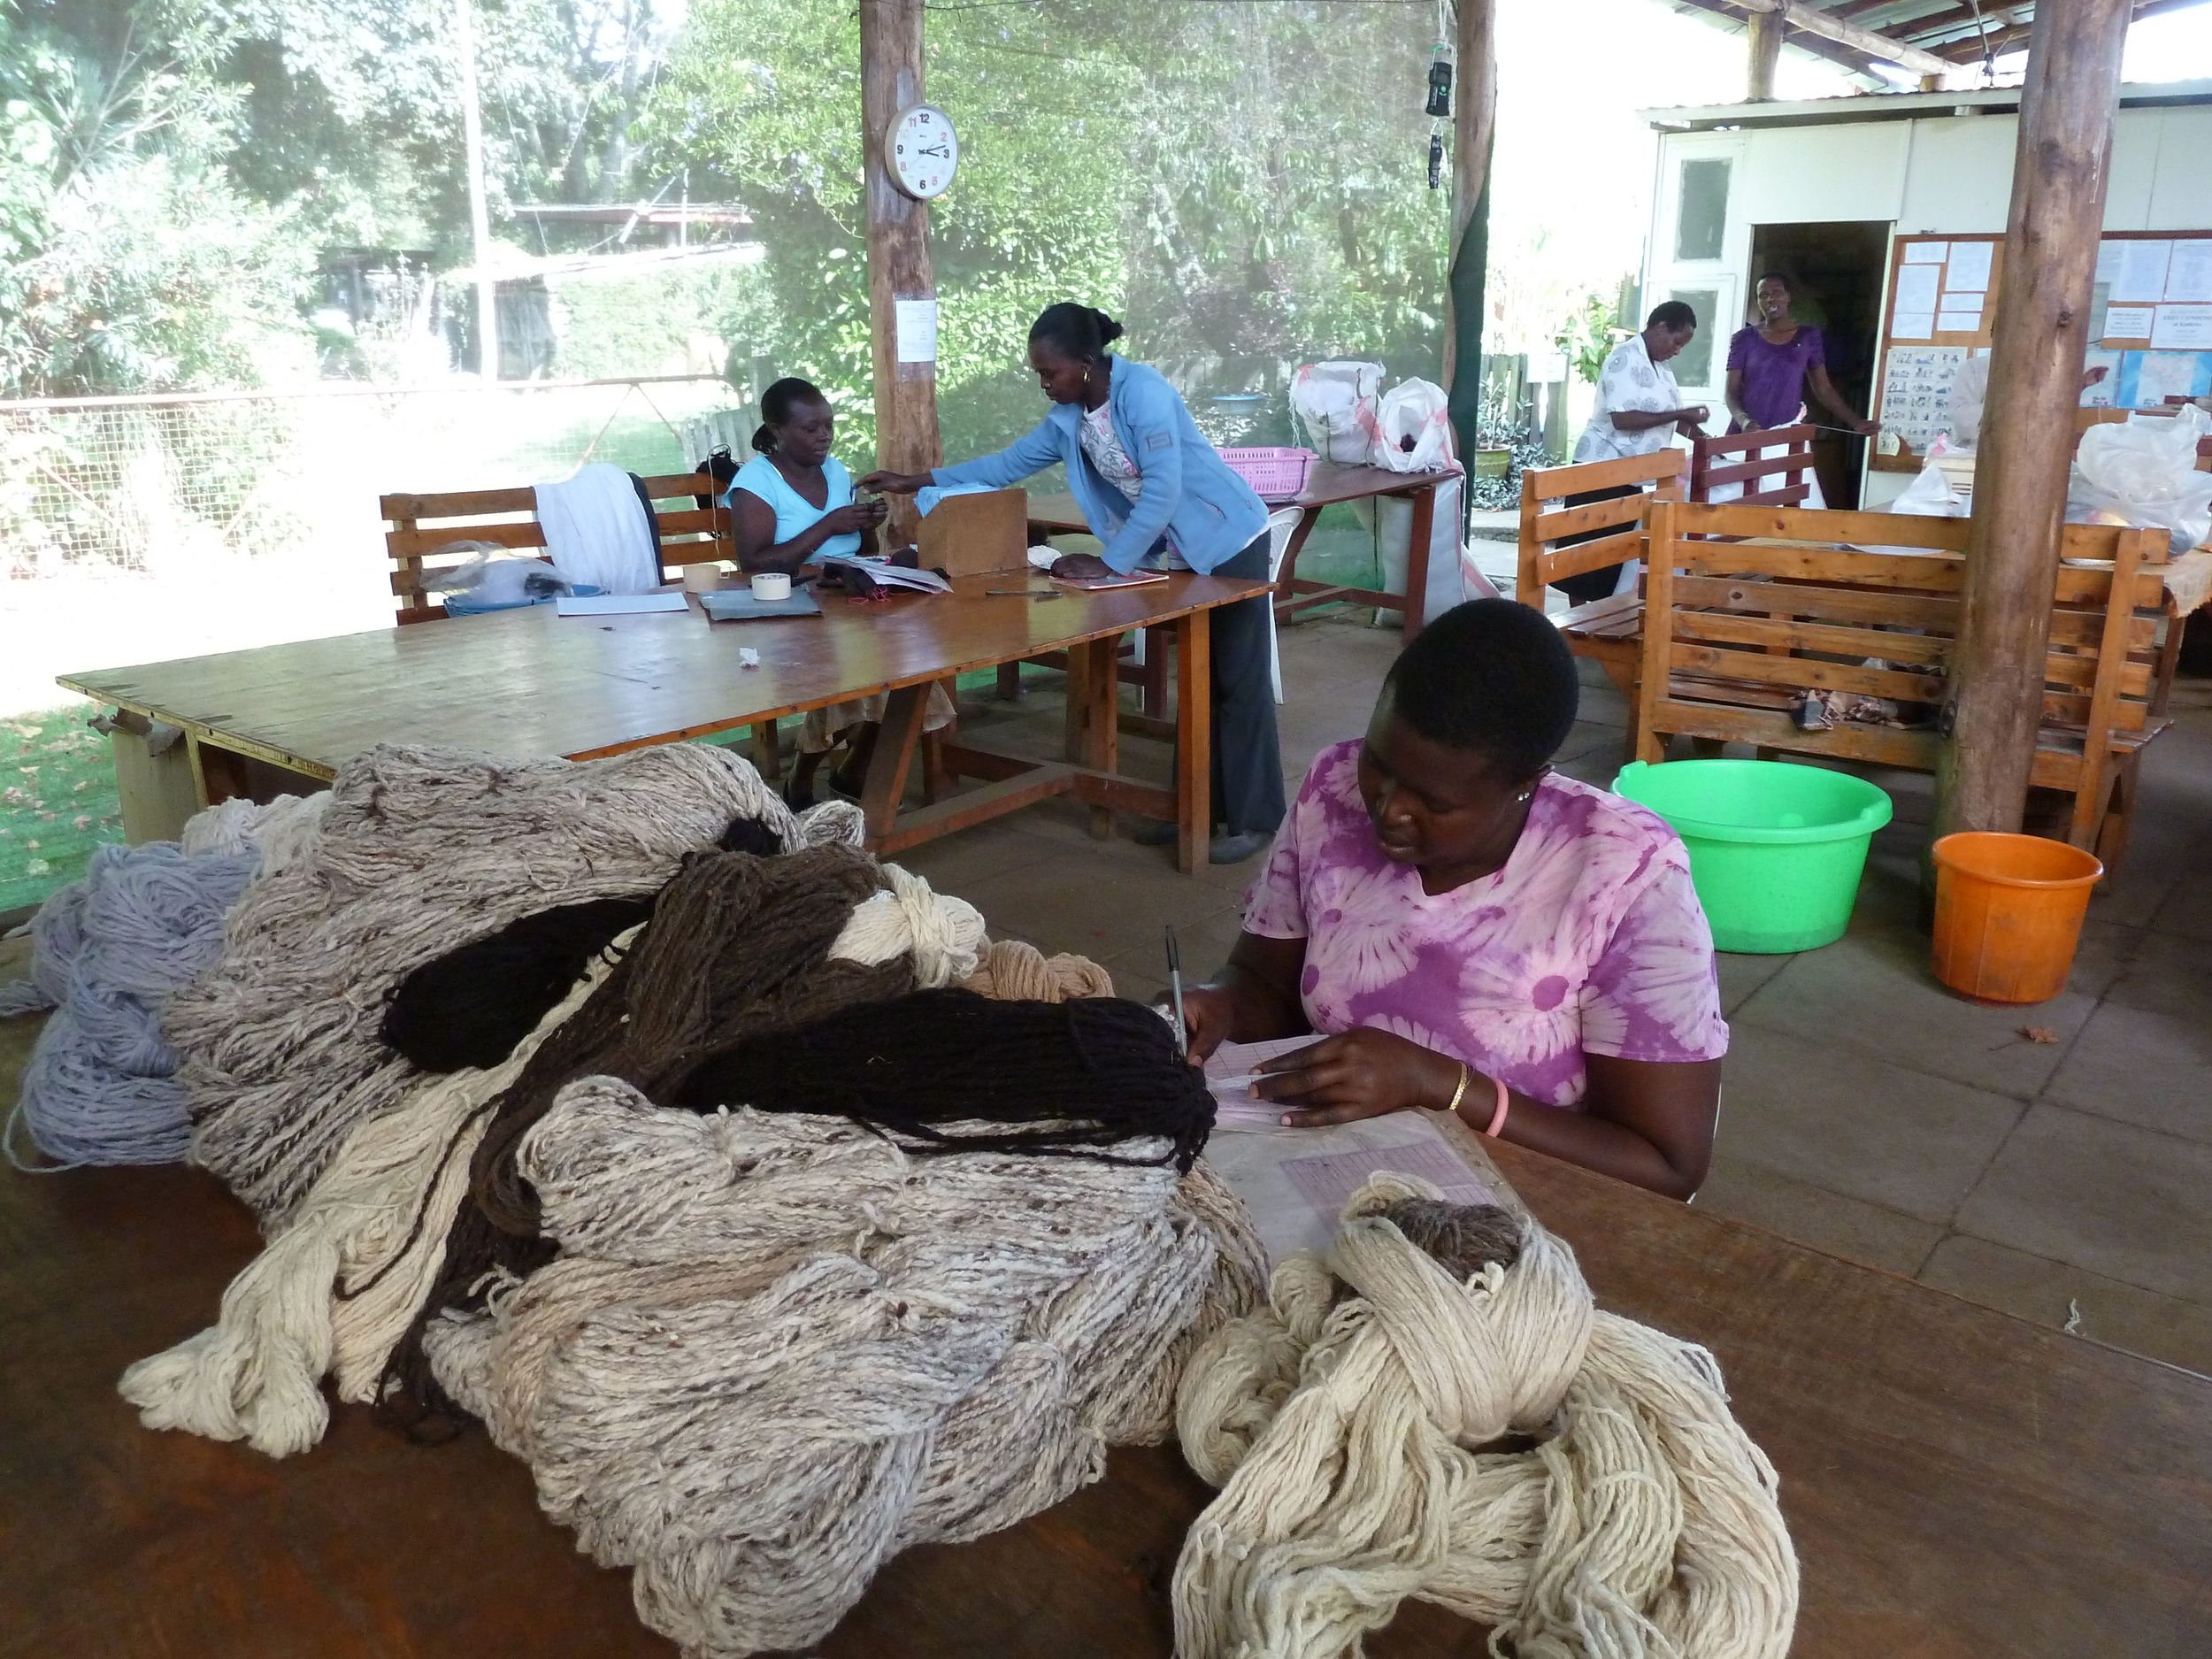 This is Anna working on the allocations of newly spun and dyed wool received when we were there.  In the mid ground Purity and Evelyn are sorting through new knitting work for the knitters.  In the background you can see Monica and Susan doing last minute packing for our order! That order has now safely arrived in Australia and is ready for sale!